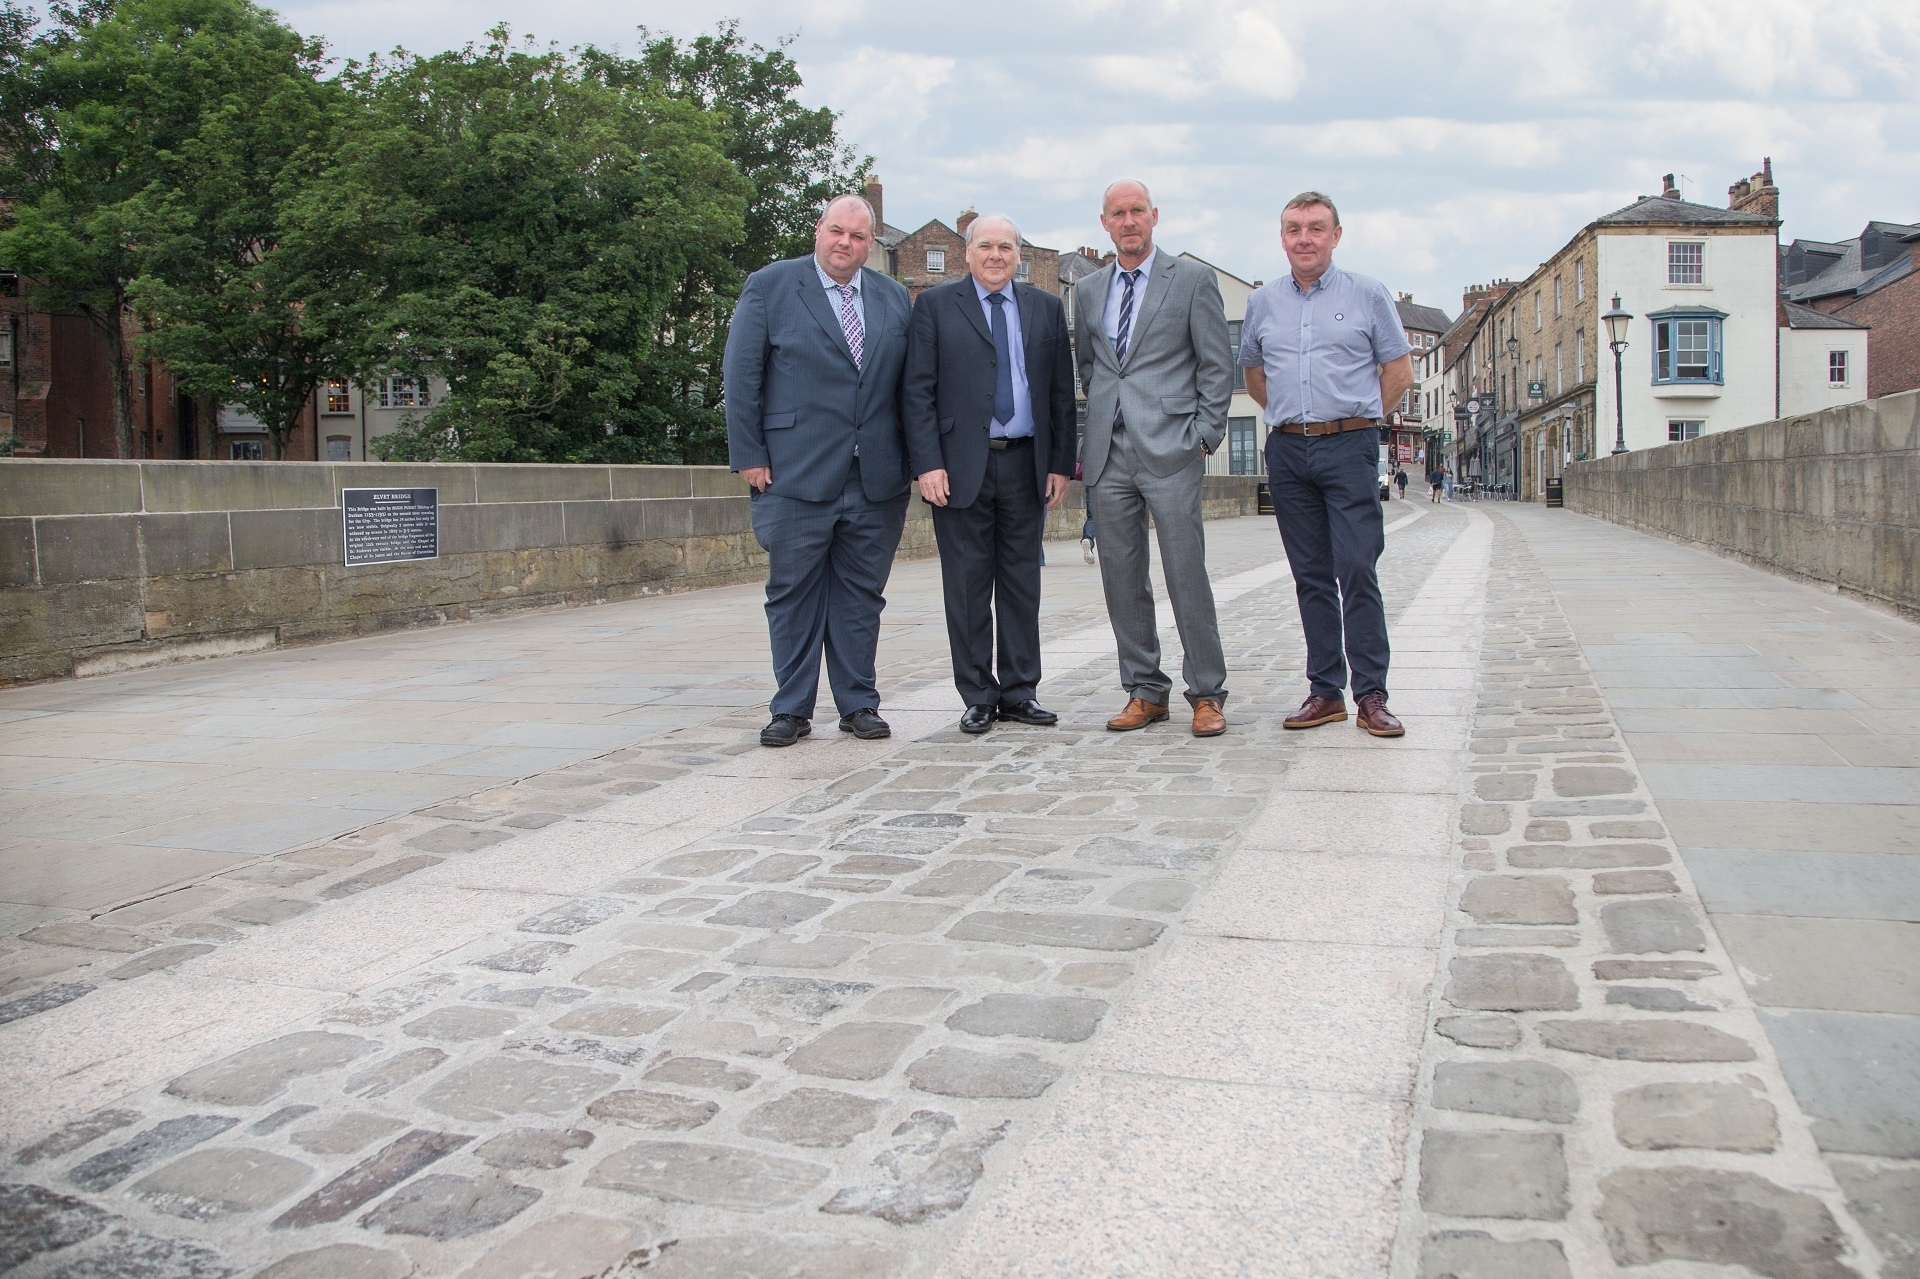 Elvet Bridge, in Durham, has been restored this summer